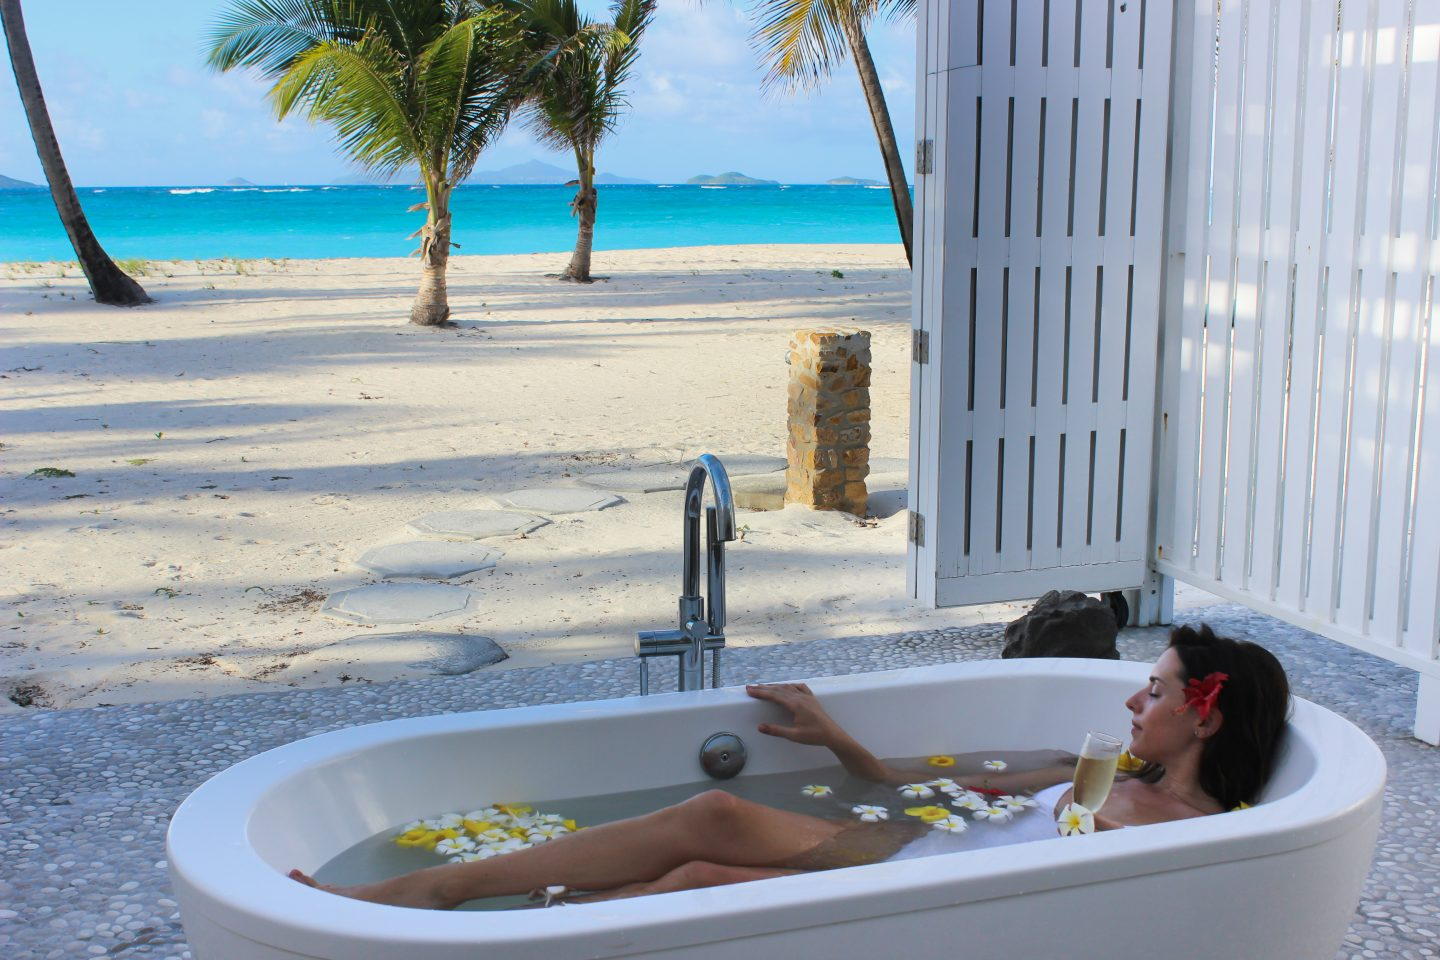 Clutch and carry on - UK Travel blogger - palm island resort, grenadines (342 of 361)